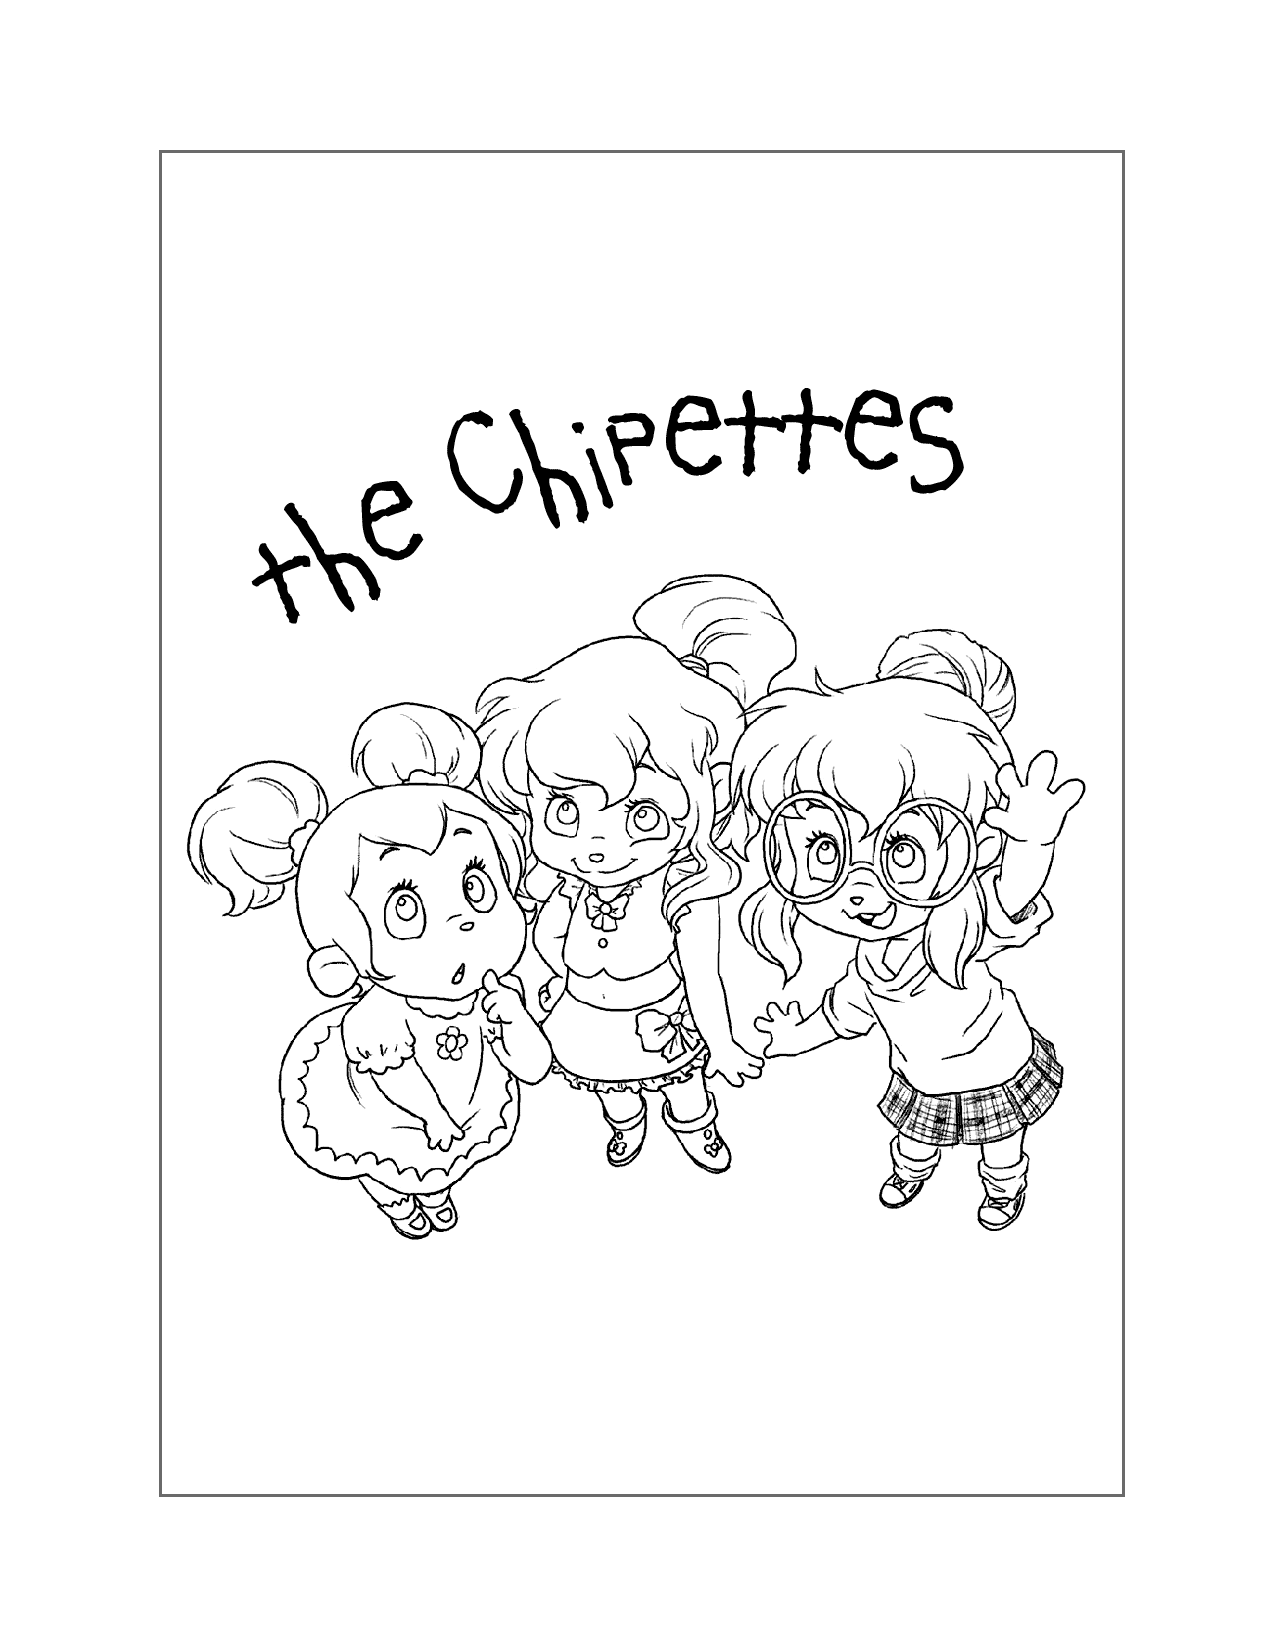 The Chipettes Coloring Page